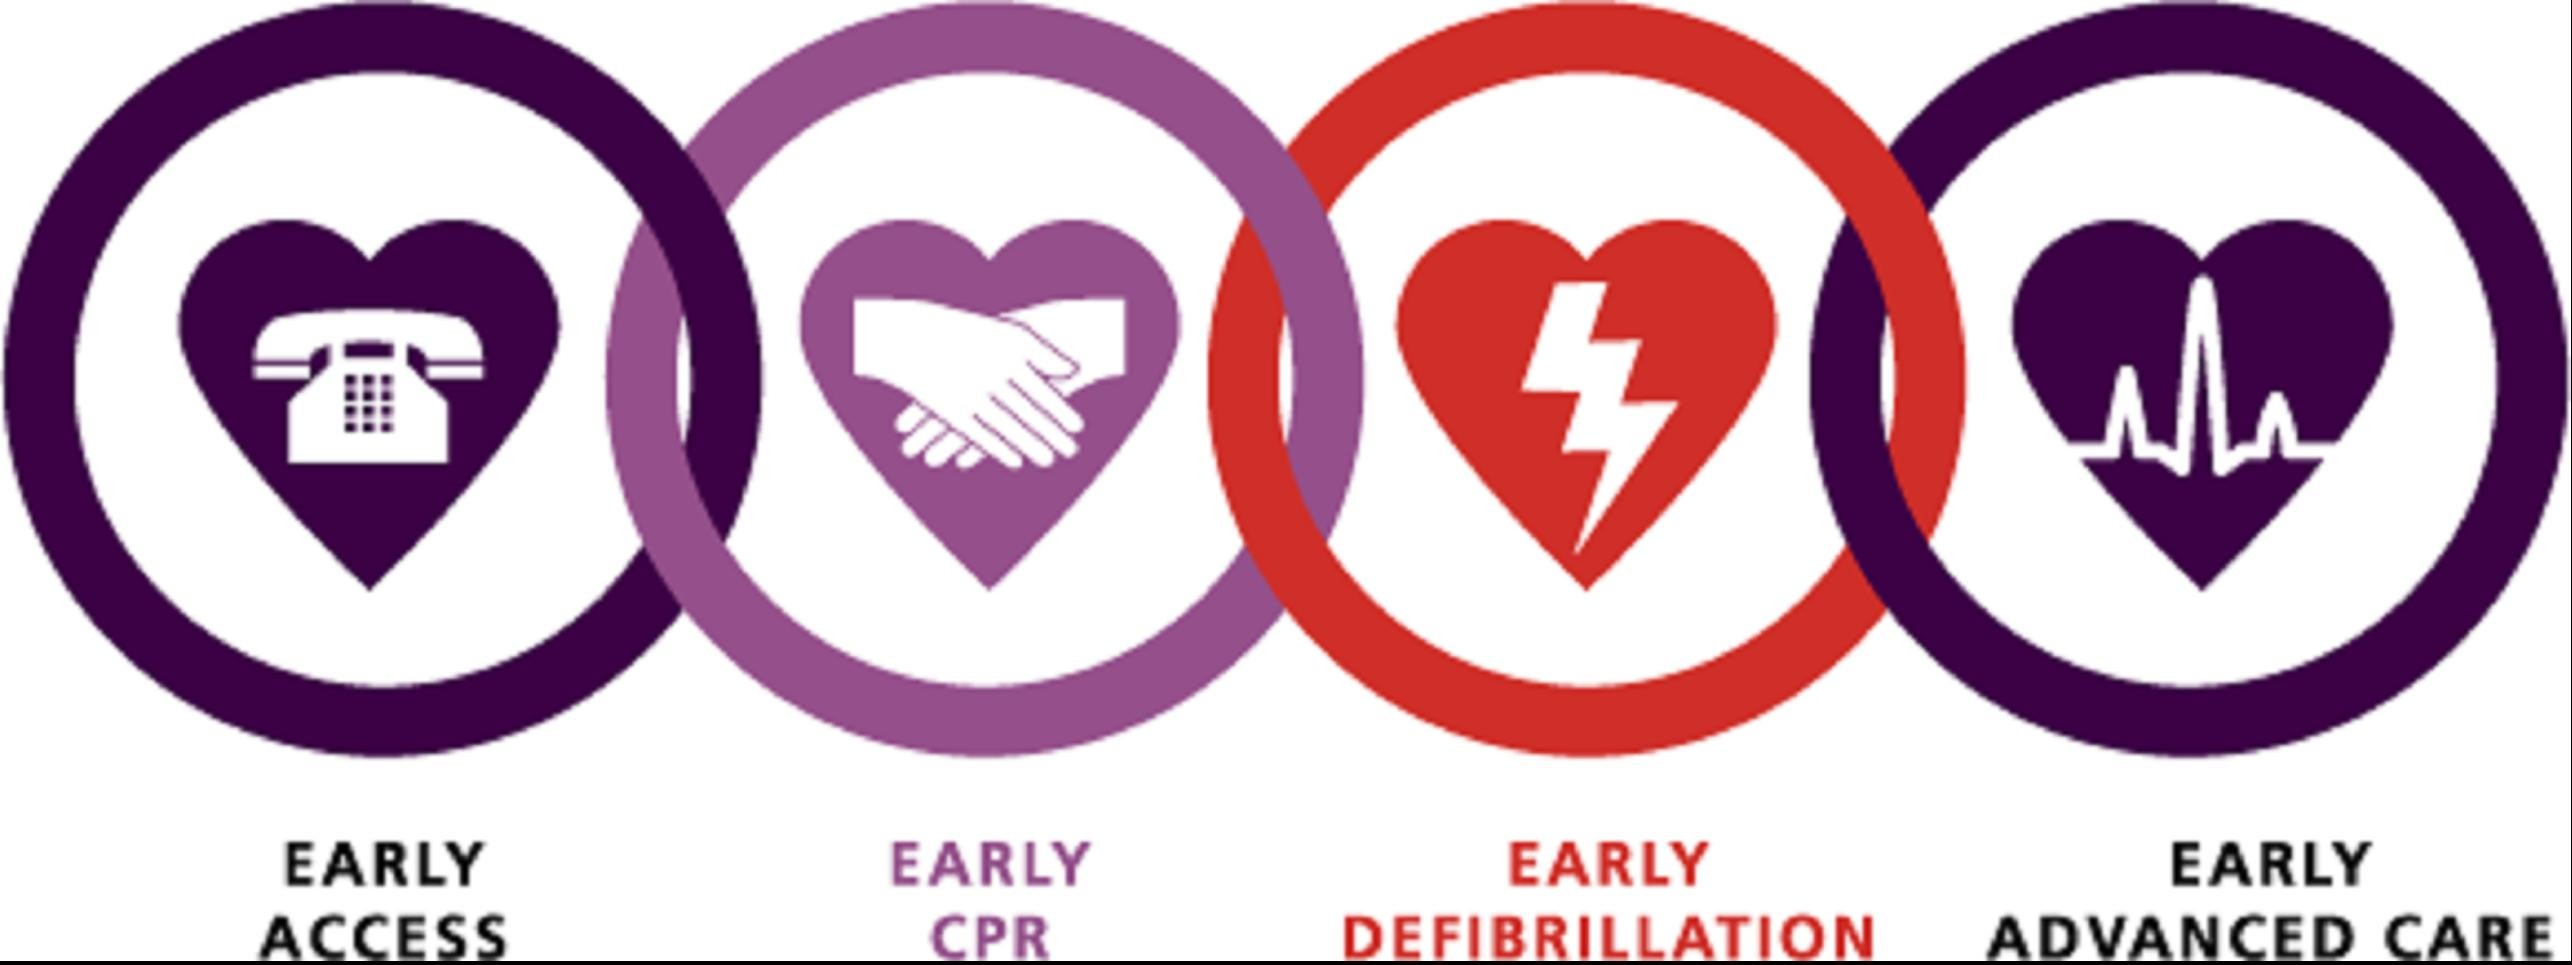 Aha cpr guidelines